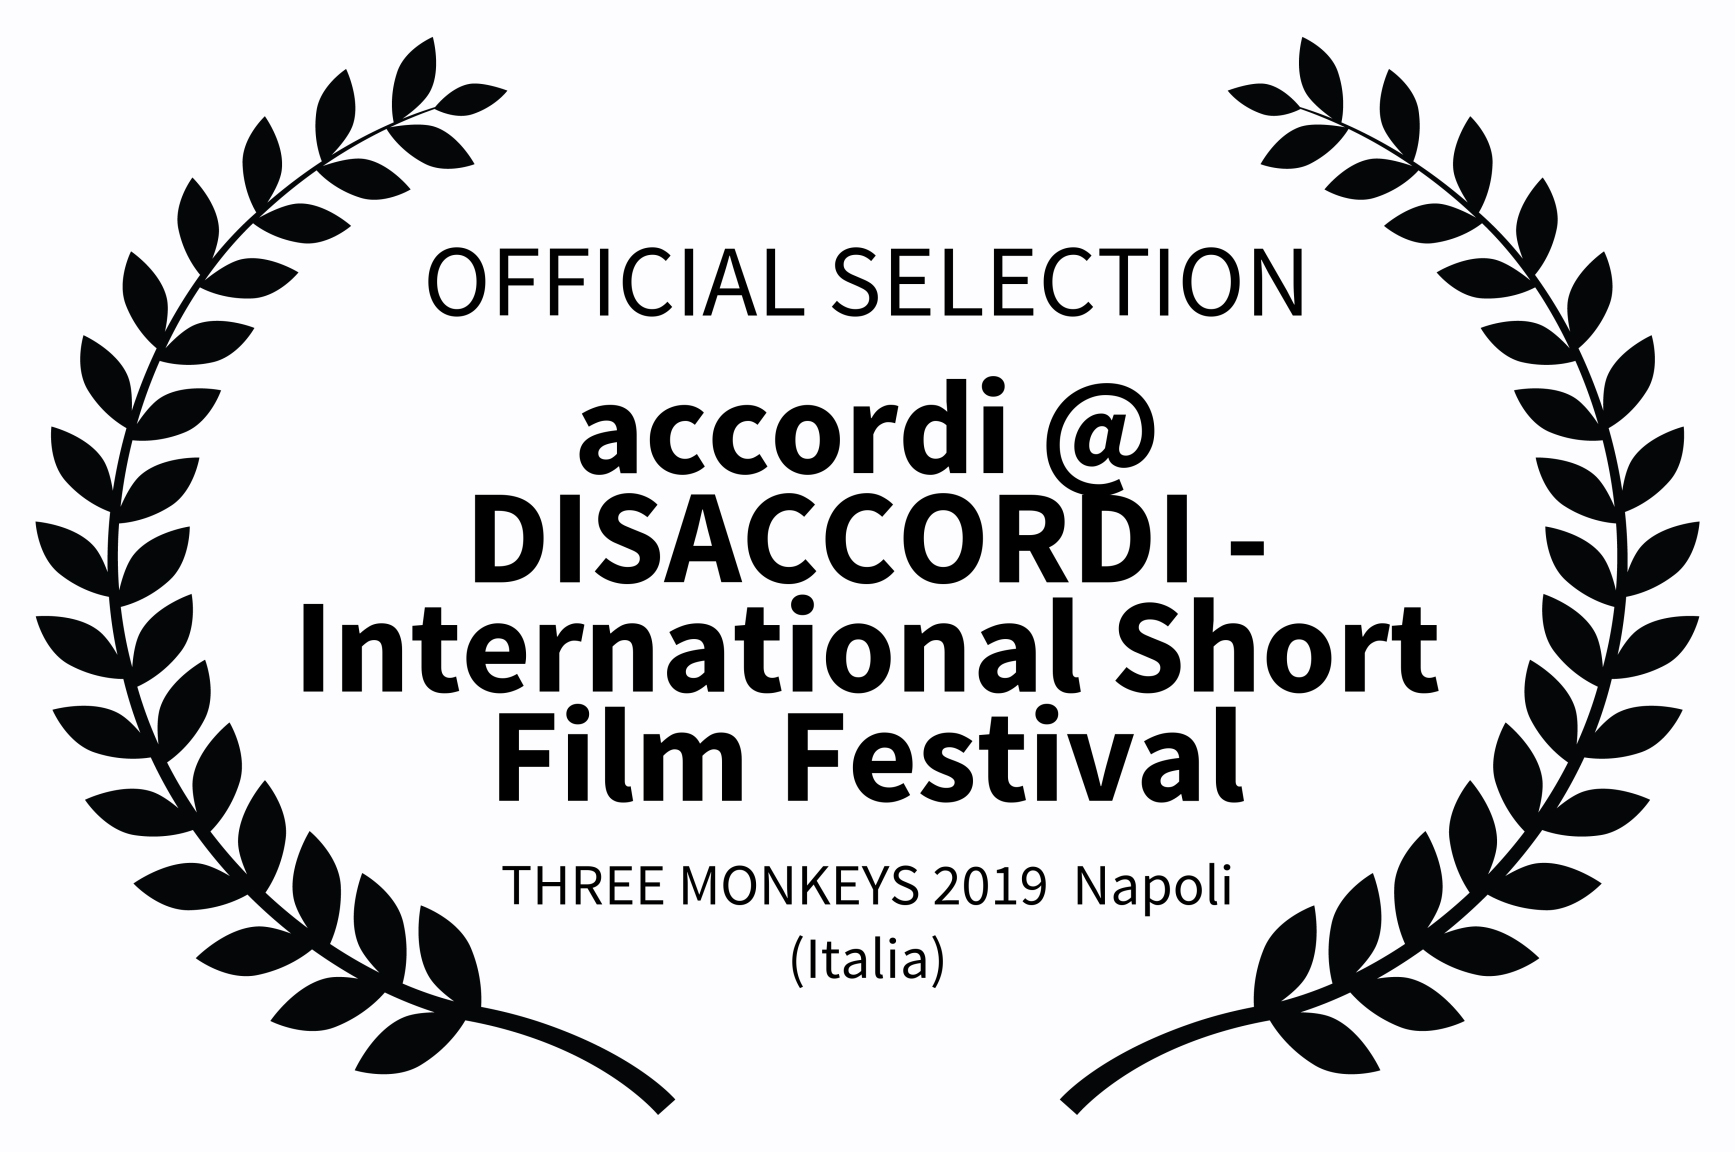 OFFICIAL SELECTION - accordi  DISACCORDI